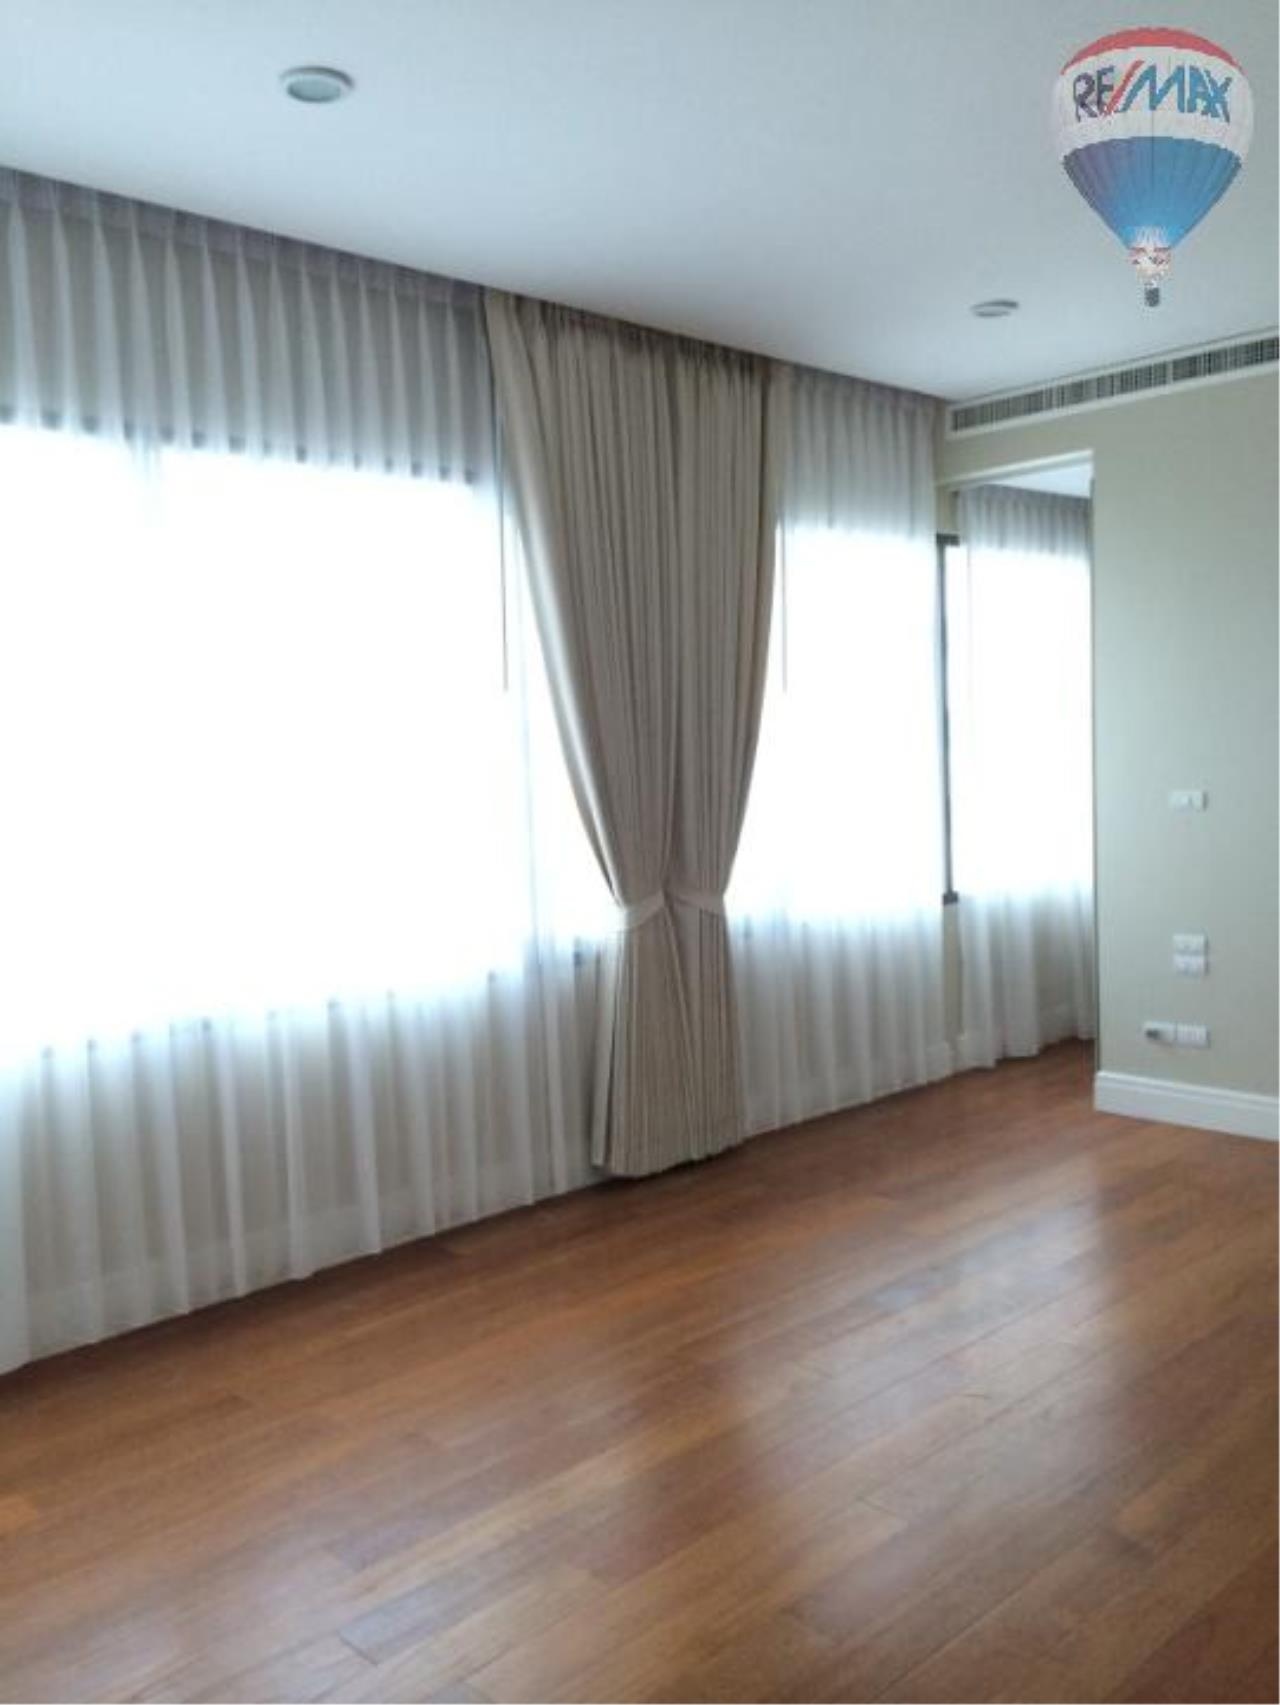 RE/MAX Properties Agency's 6 Bedroom 365 sq.m. for Rent at Bright Sukhumvit 24 25